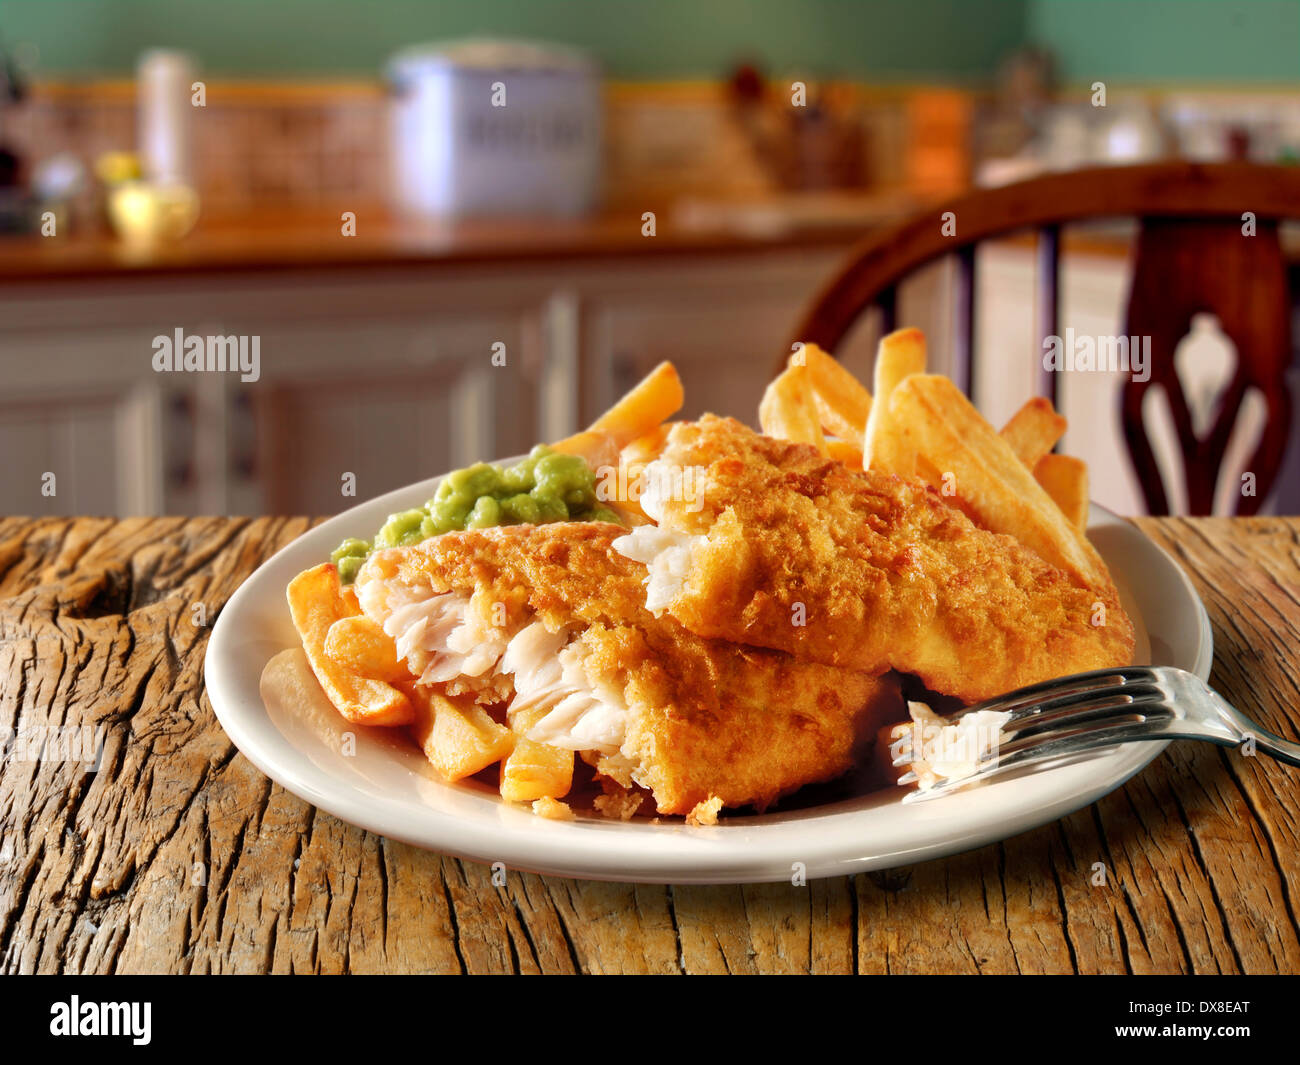 Traditional British  Battered Fish And Chips served on a plate in a traditional kitchen setting ready to eat - Stock Image